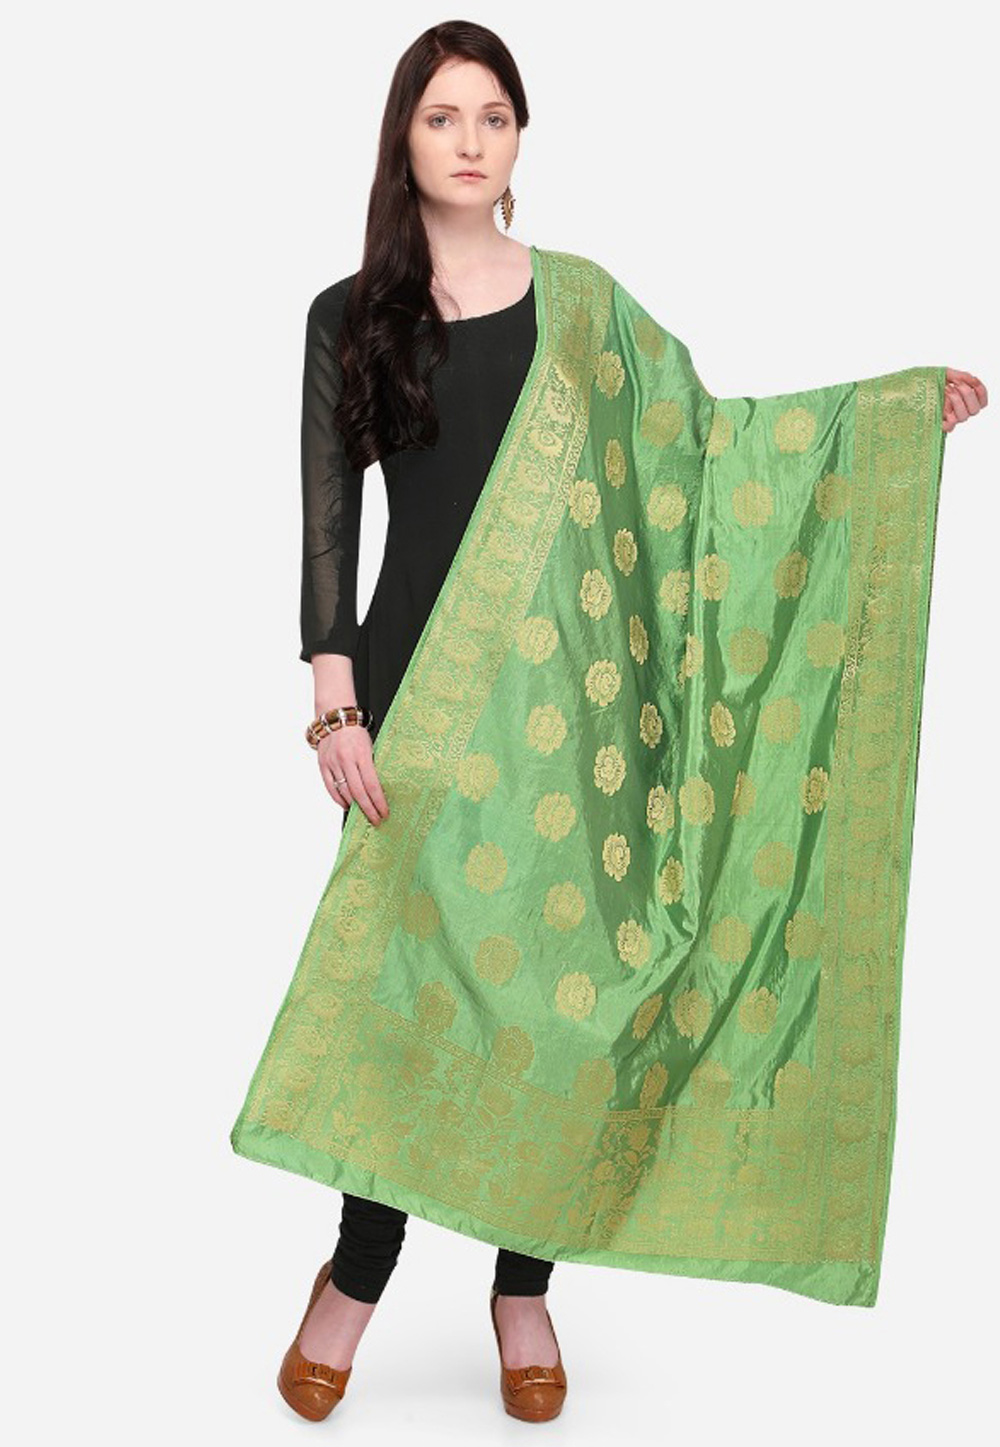 Light Green Banarasi Dupatta 164336